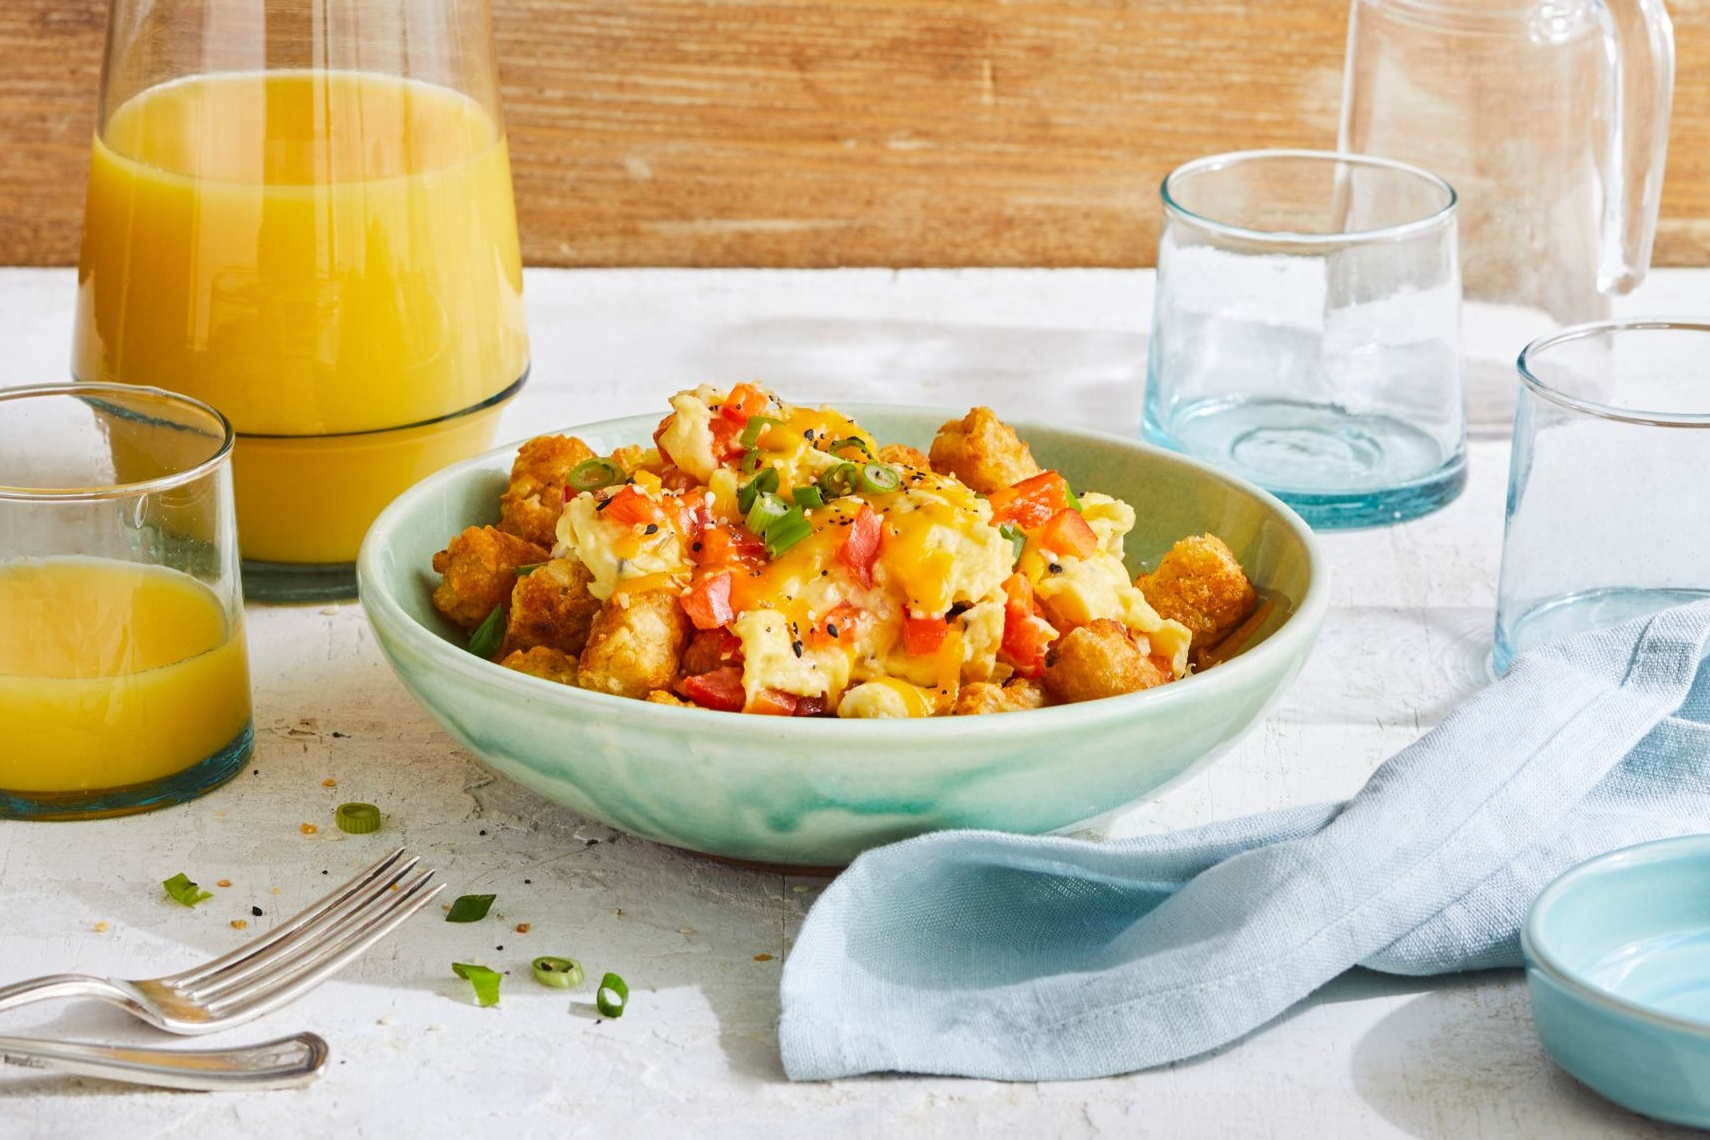 breakfast bowl with tater tots, scrambled eggs, bell peppers, green onions, cheese, and salsa